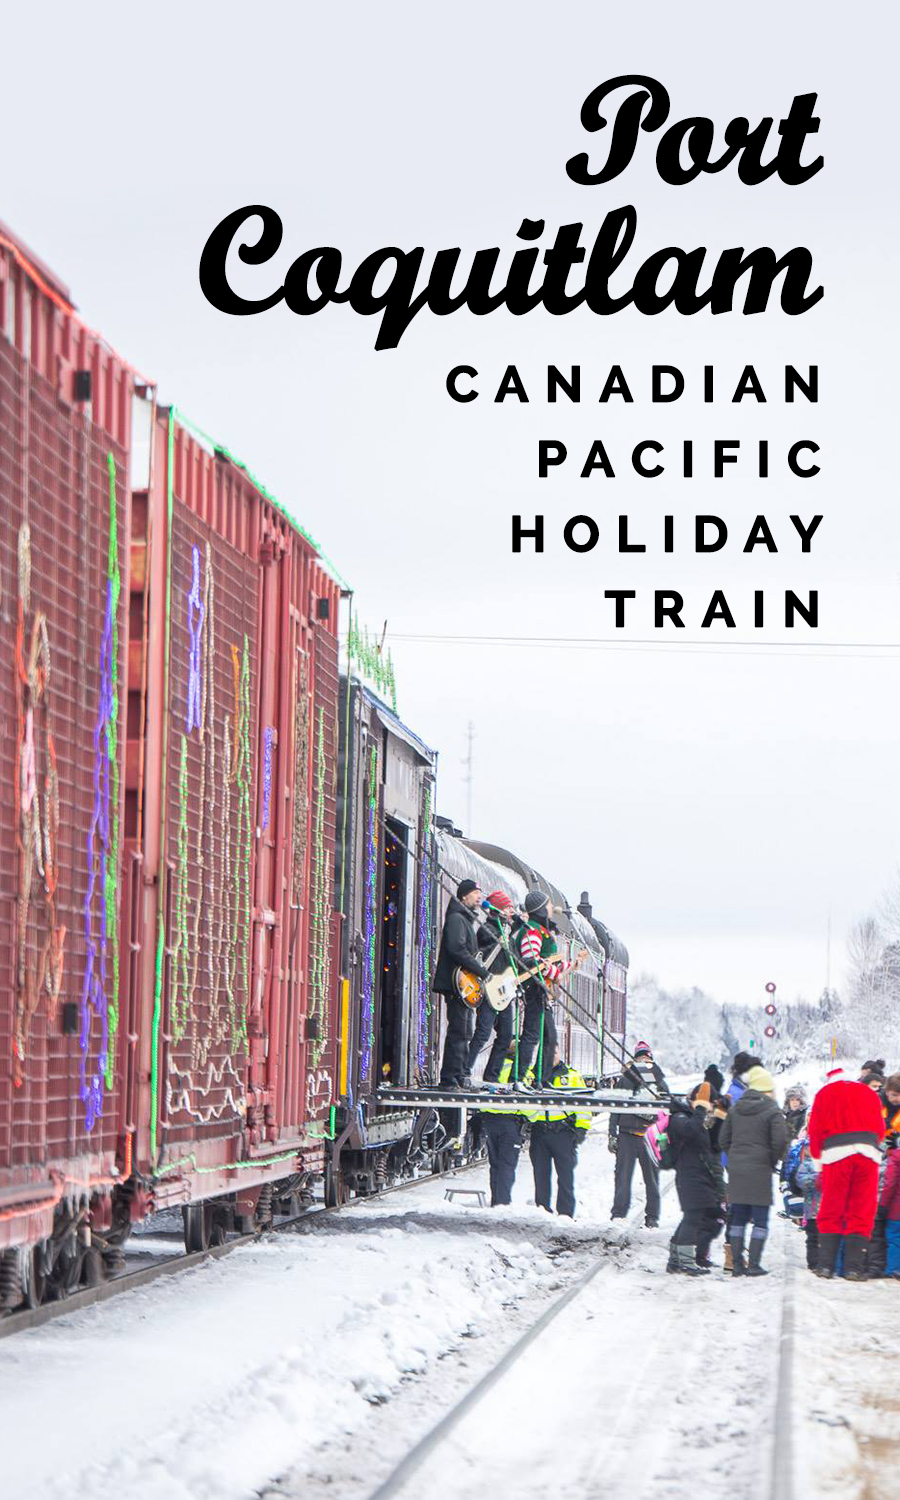 Canadian Pacific Holiday Train - A pan-Canada 1,000 feet train traveling across the country and bringing performances to you on a brightly decorated boxcar stage – can Christmas get better than this? The Holiday Train will offer live holiday-themed music when it stops at the West Coast Express Station in Port Coquitlam, before slipping off into the night again.There is also Skate with Santa at the PoCo Rec Complex (just across the street from the train station) from 1:15pm to 3:45pm, calling for a day packed with fun and holiday spirit in Port Coquitlam.WHEN:December 17 •6pm to 6:45pmSkate with Santa at the PoCo Rec Complex: 1:15pm to 3:45pmWHERE: Port Coquitlam West Coast Express Station, Port Coquitlam (map)COST: FREE (accepts heart-healthy donation or monetary donation for the local food bank)Skate with Santa: regular public skate admission